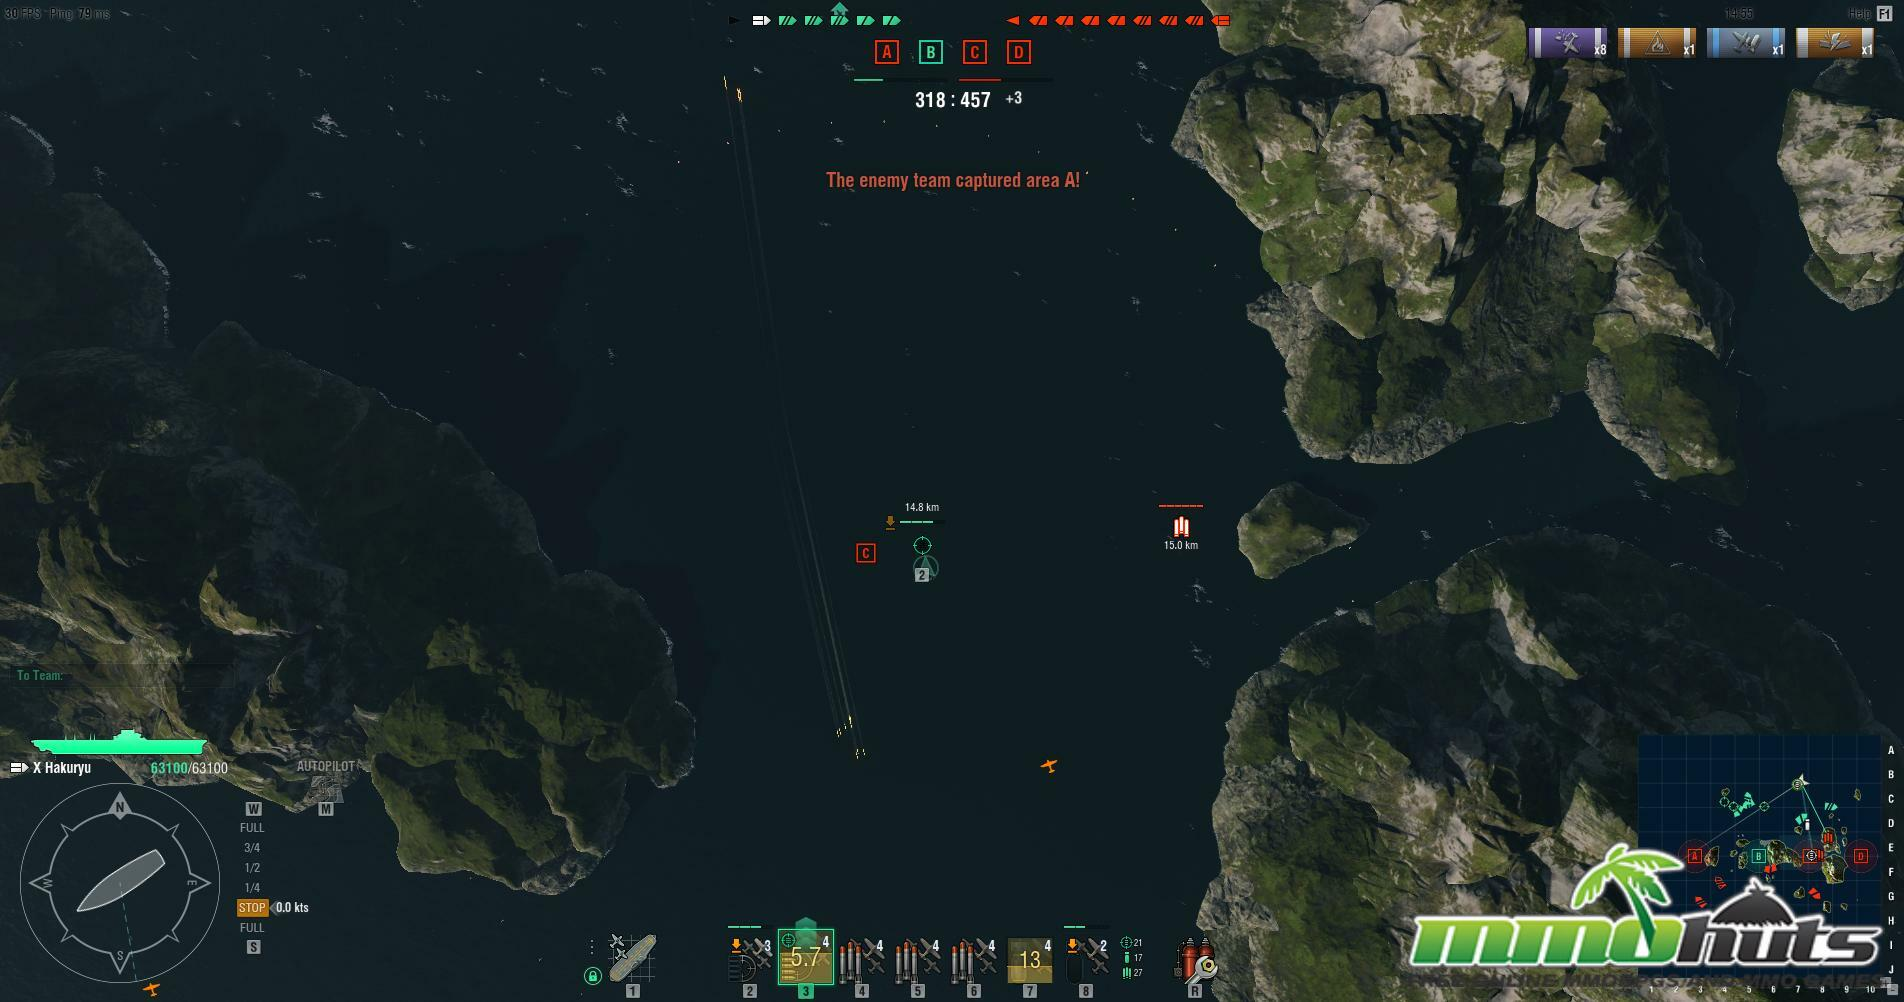 worldofwarships 2015-10-01 16-52-01-89